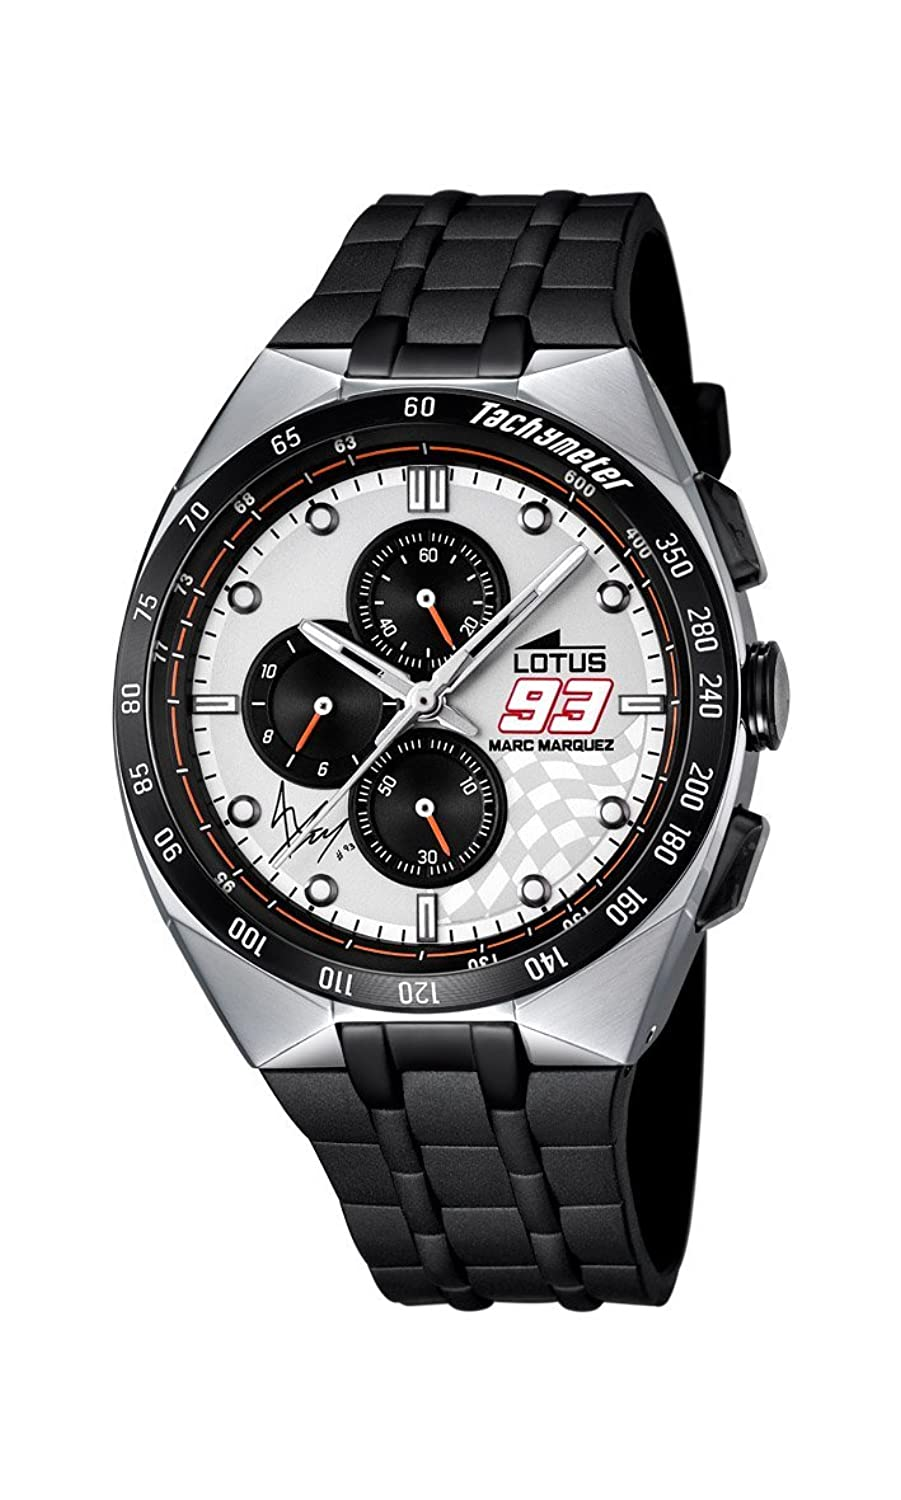 Amazon.com: LOTUS Watch Marc Marquez Male Chronograph - 18235-1: Lotus: Watches